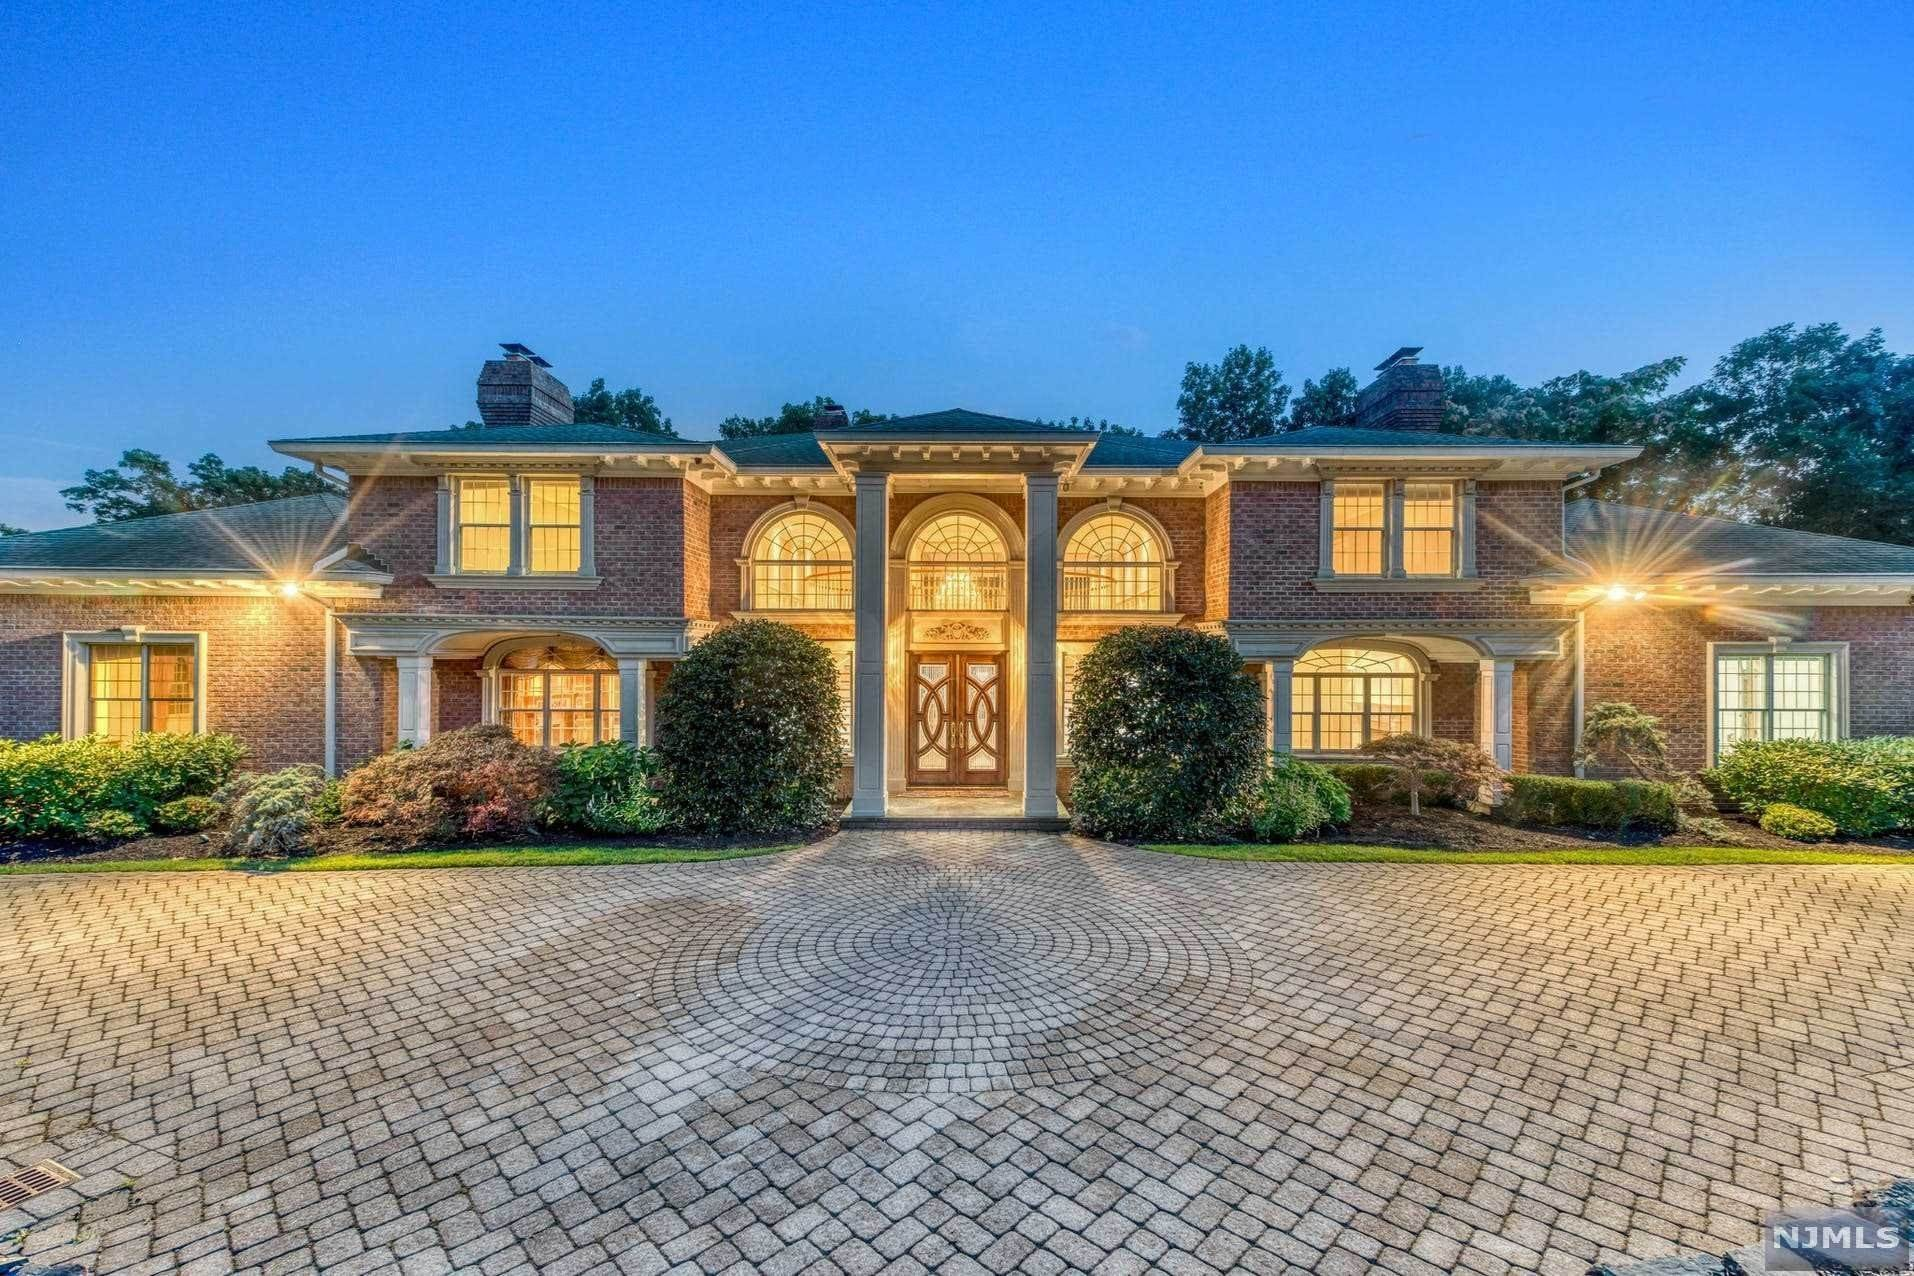 25. Single Family Home for Sale at 14 Shinnecock Trail Franklin Lakes, New Jersey, 07417 United States